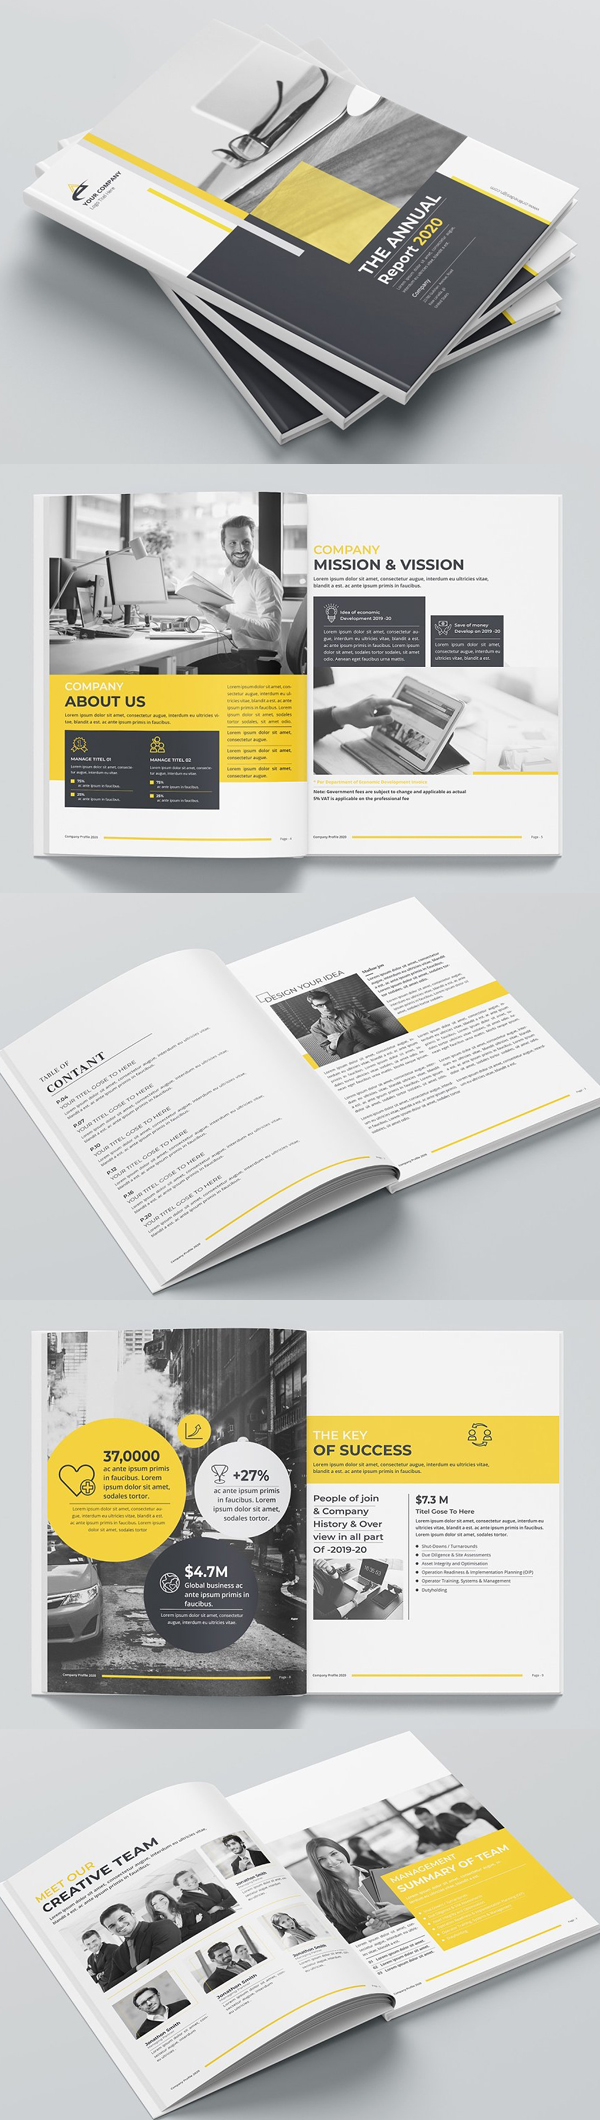 Annual Report Print Template